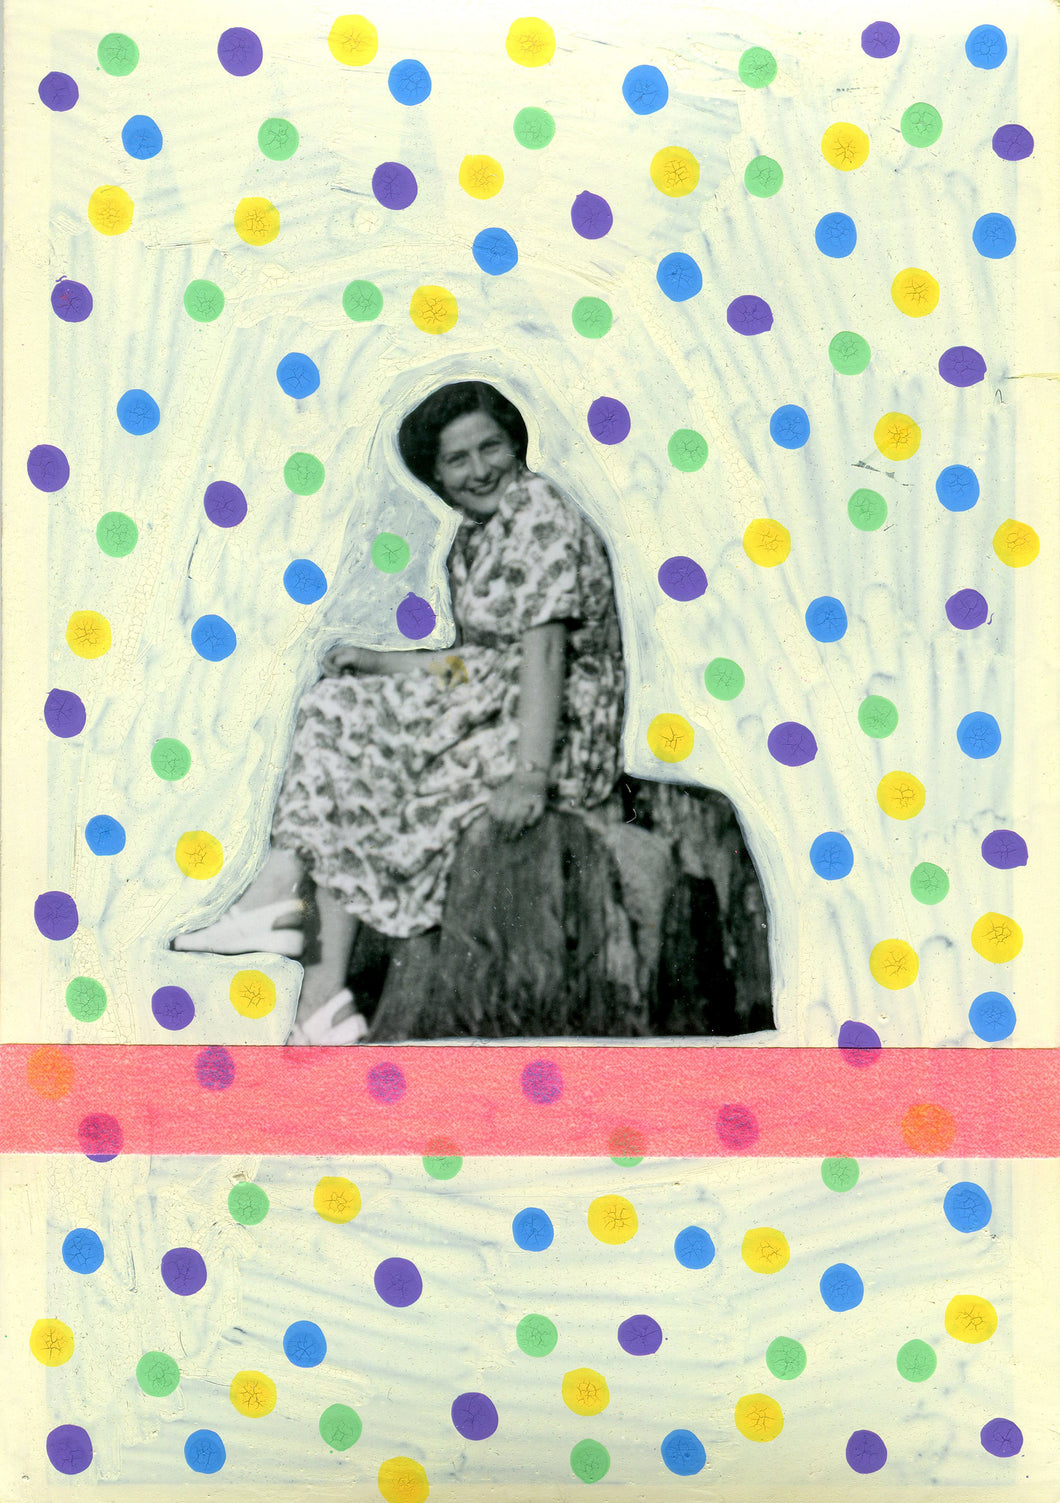 Confetti Art Collage On Vintage Photo Of Happy Woman - Naomi Vona Art